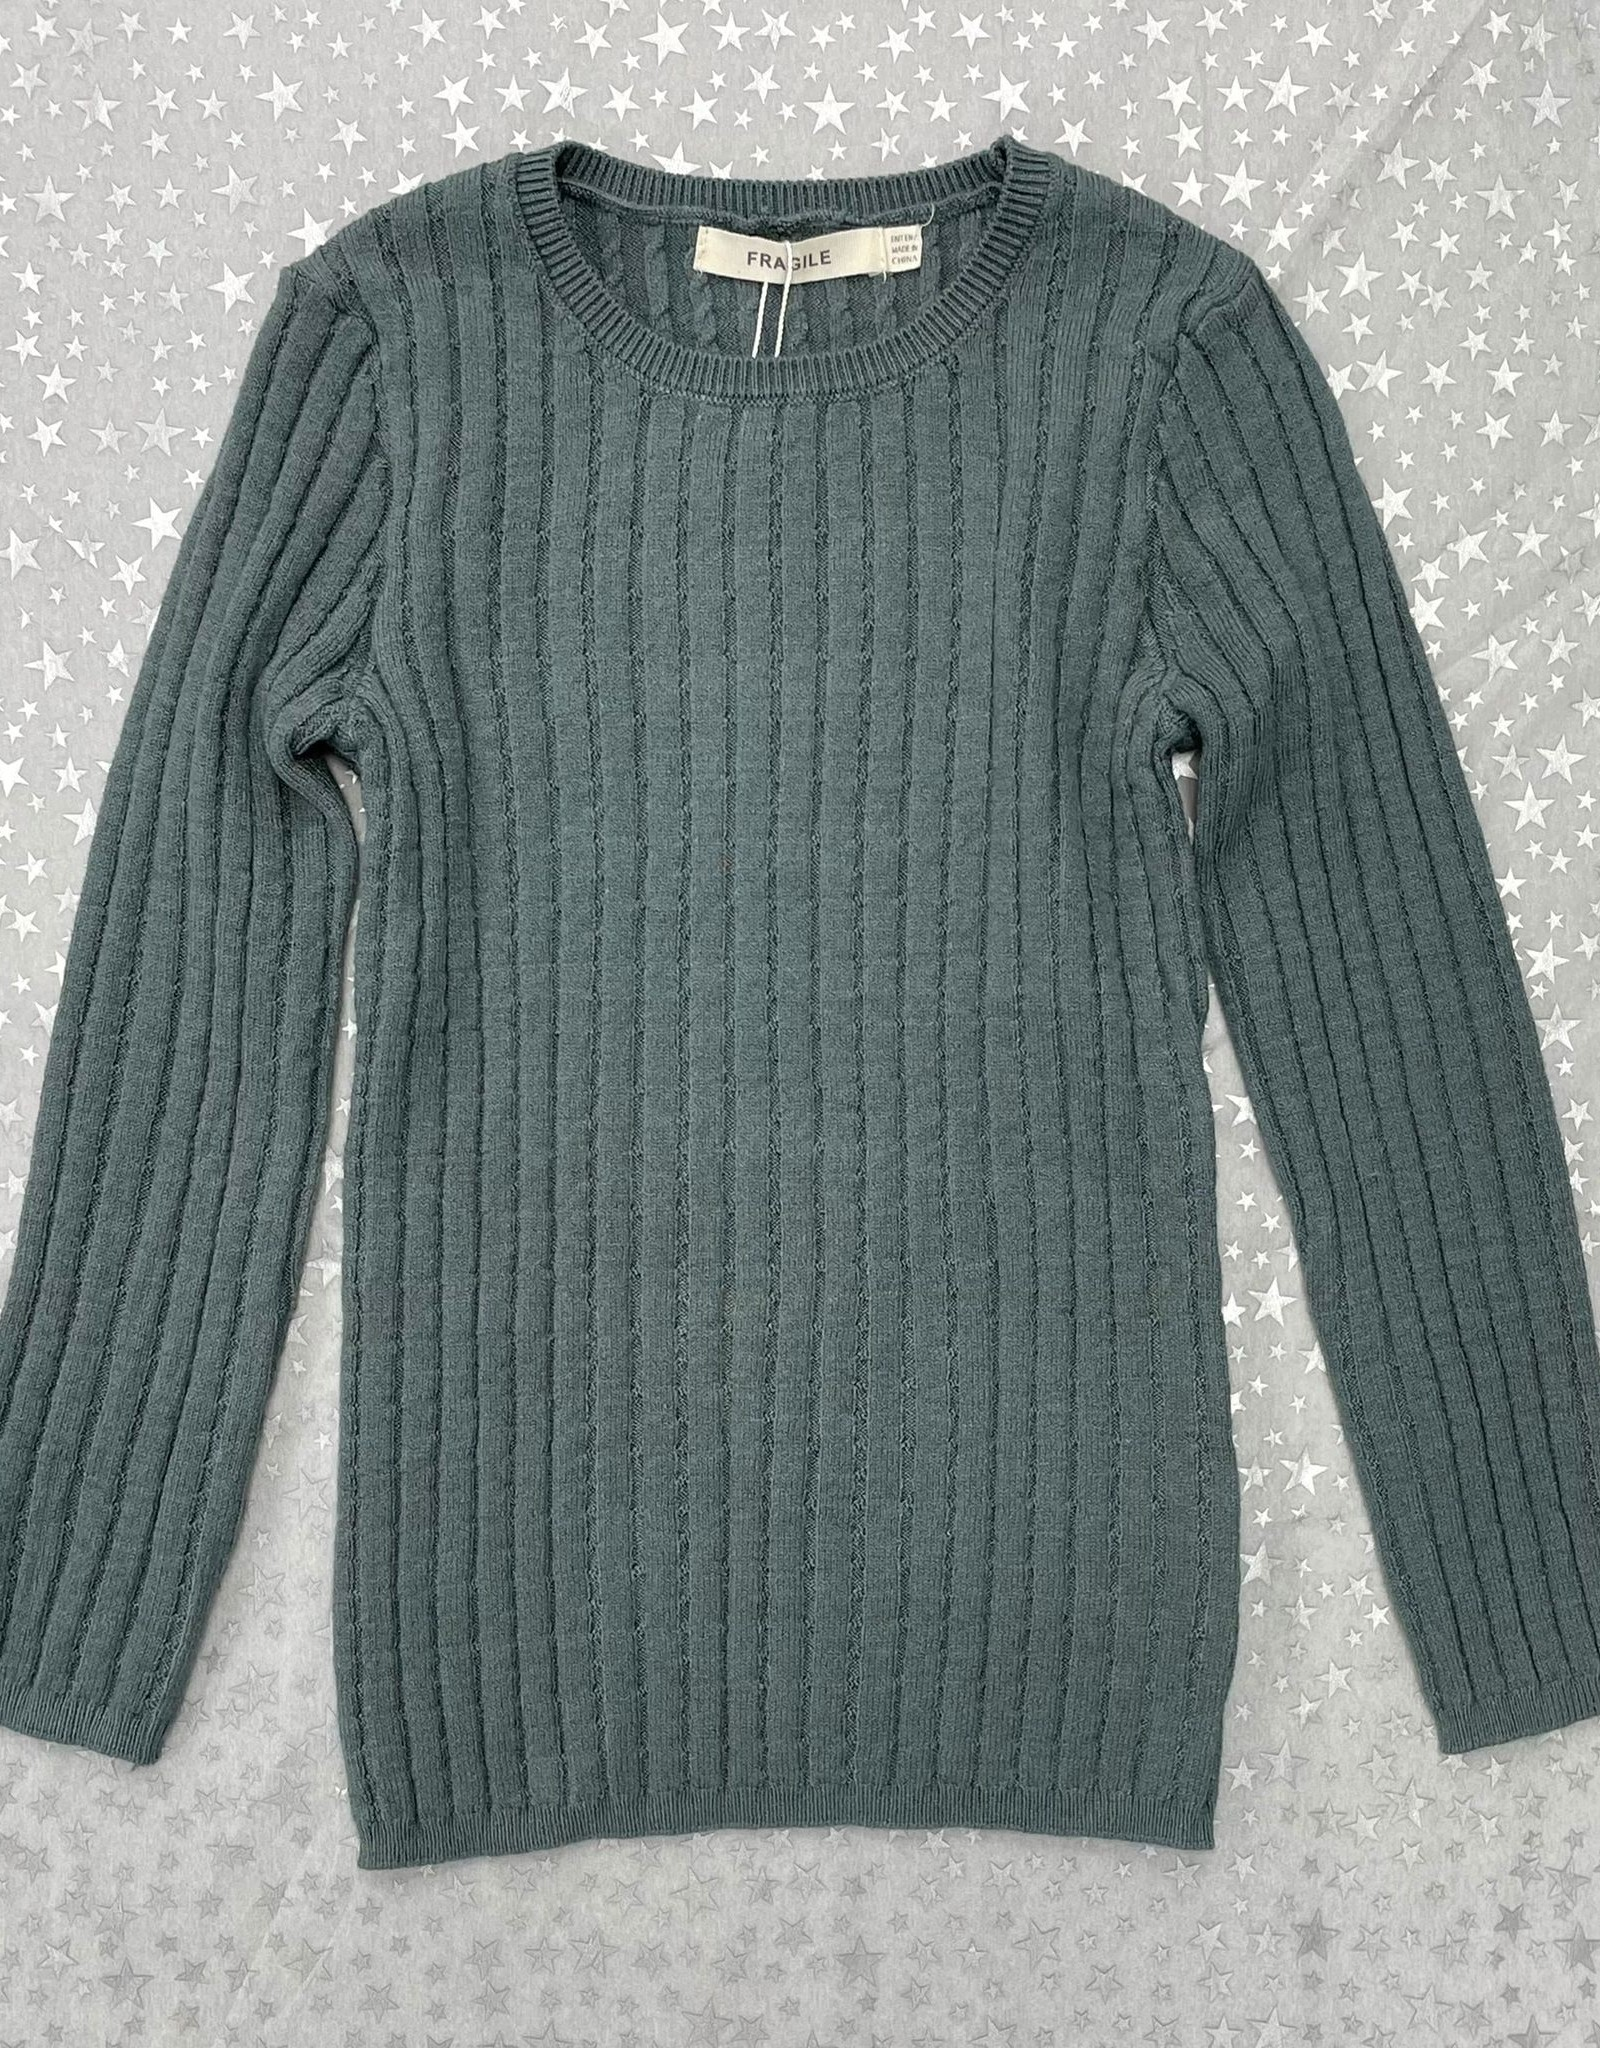 FRAGILE Fragile Reverse Cable Rib Knit Top